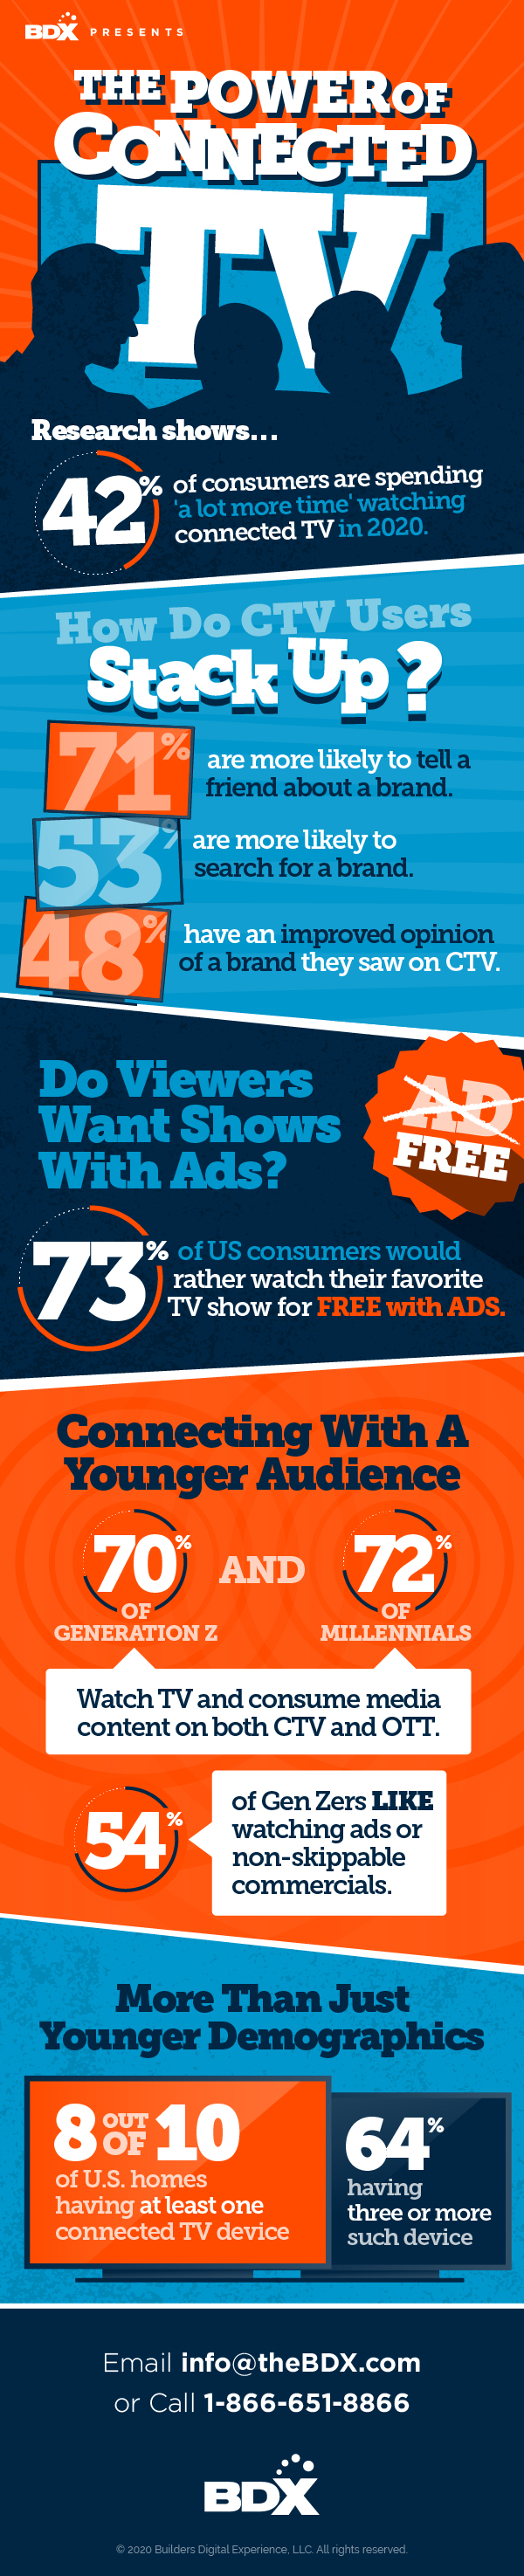 Connected TV is the most effective way to connect with new home shoppers.